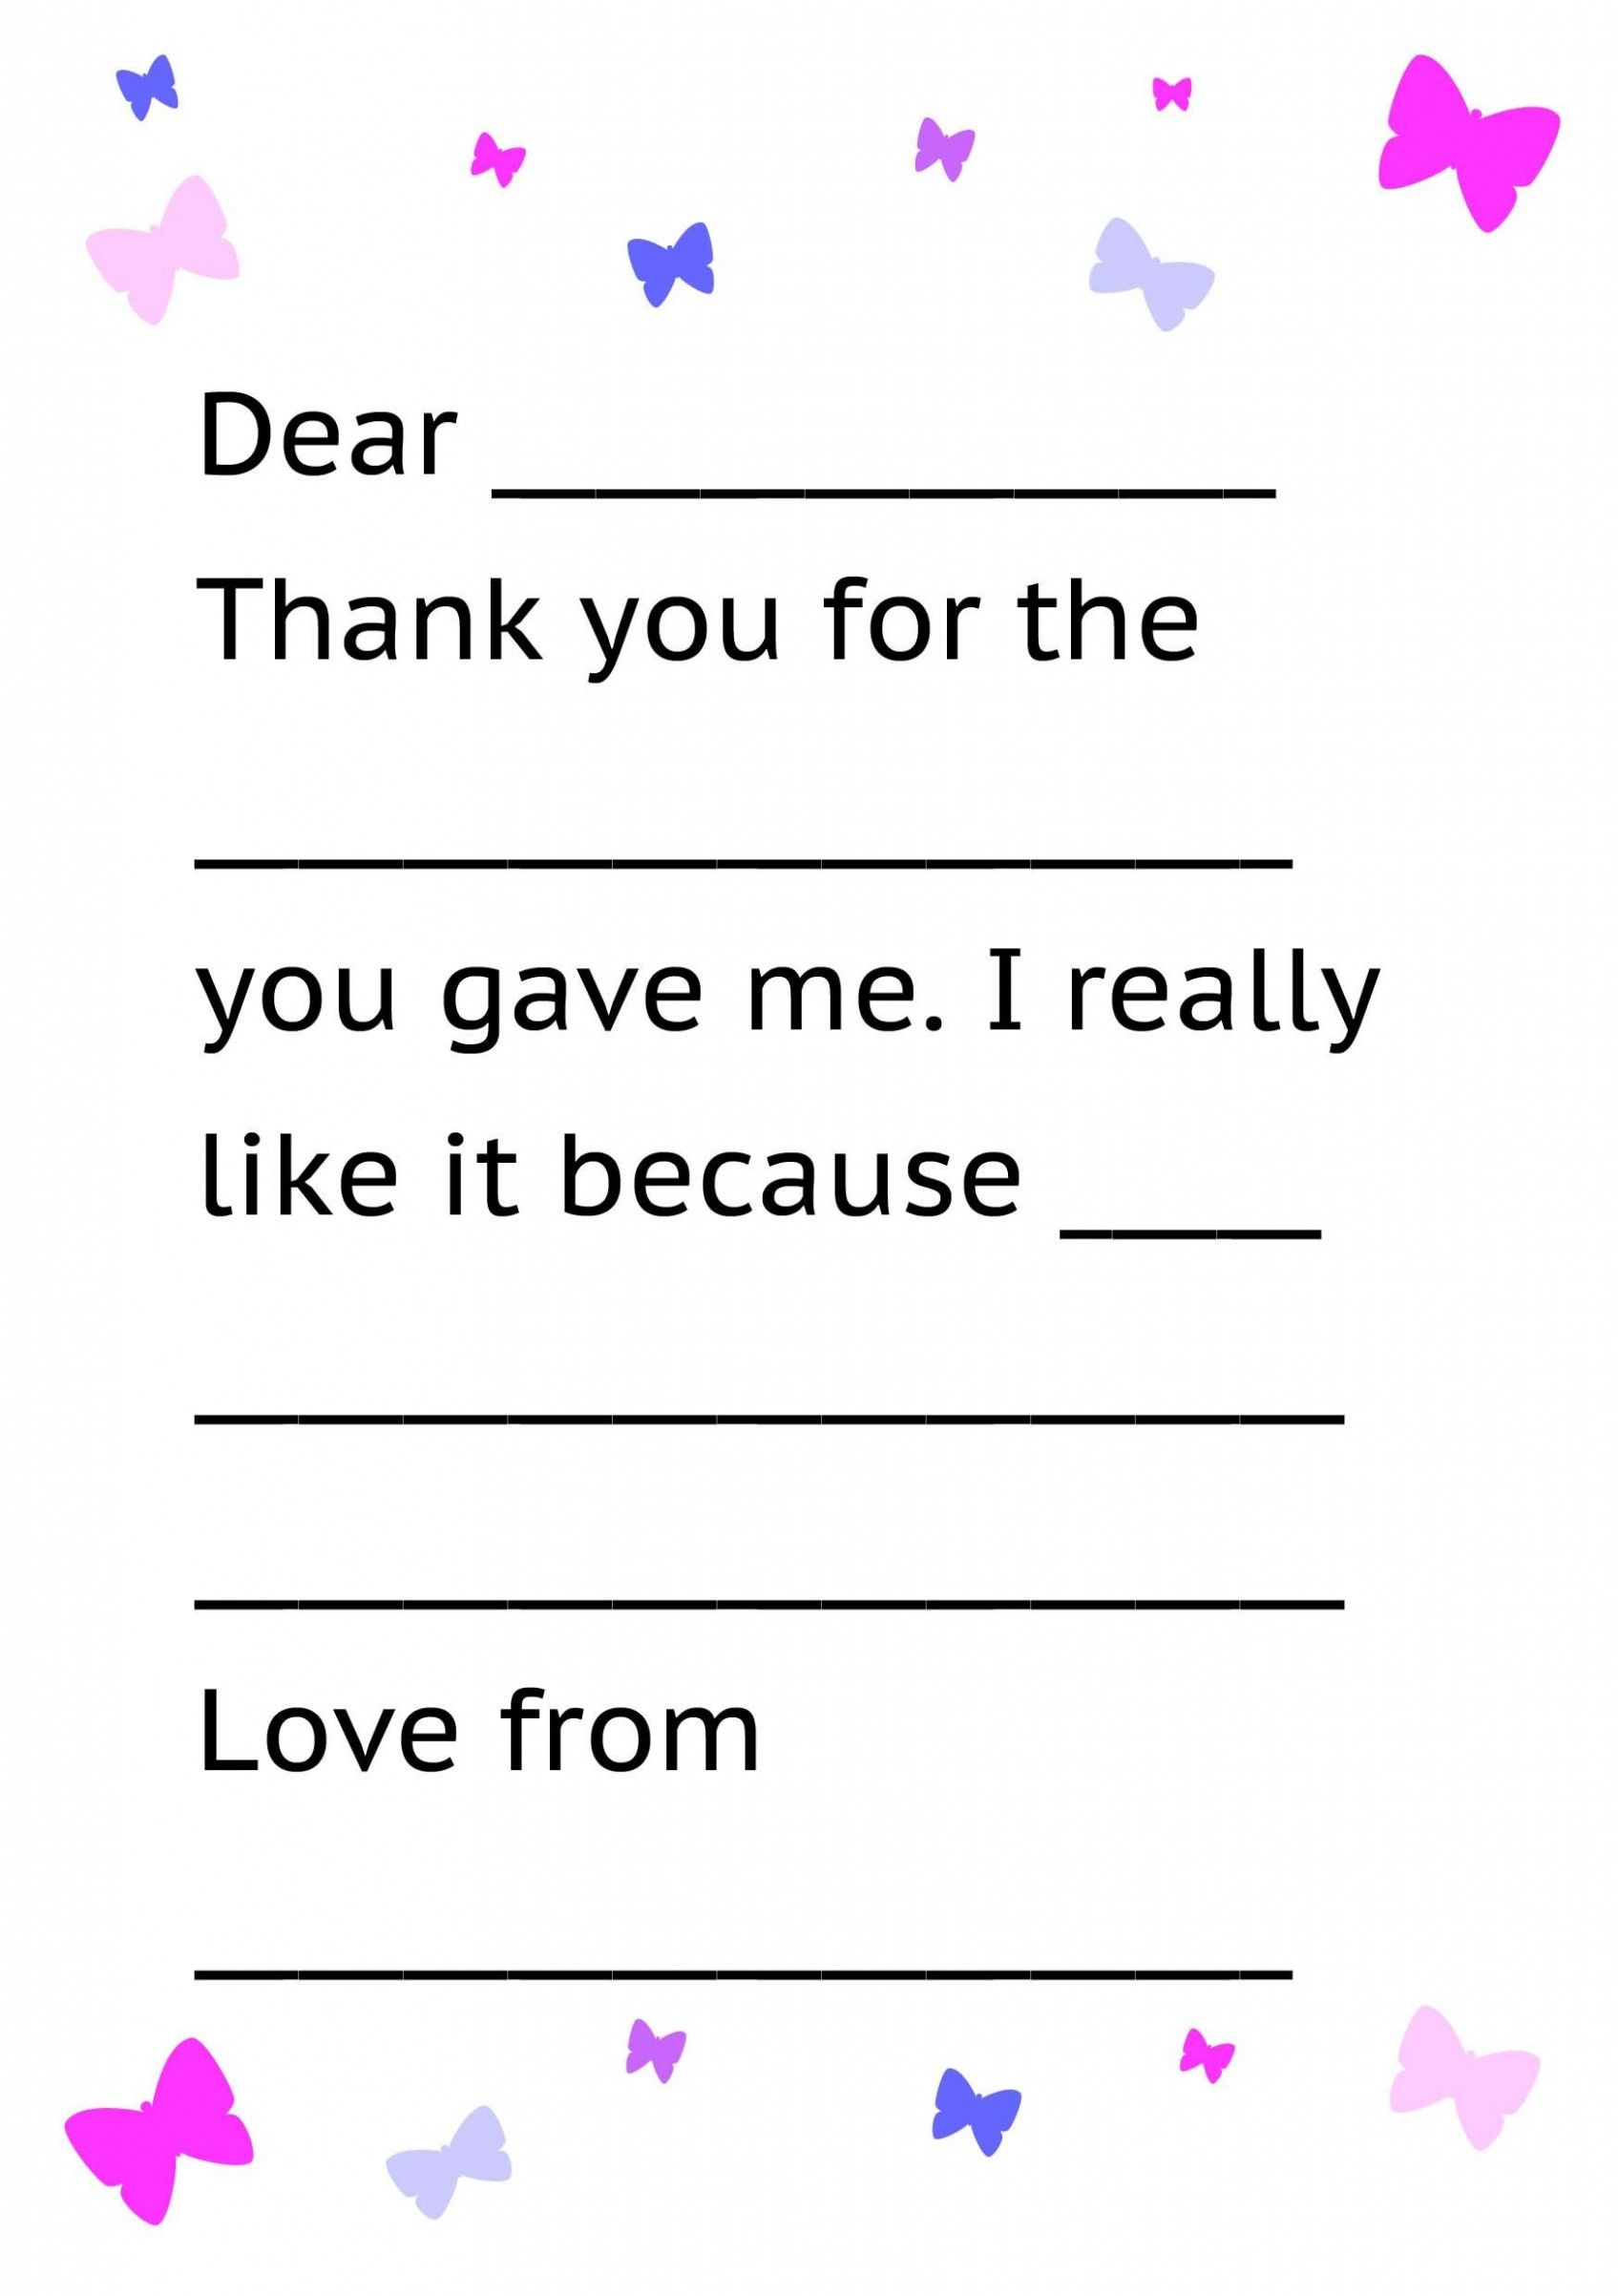 Friendly Letter Template 3st Grade Quiz How Much Do You Know About Friendly Letter Letter Template For Kids Thank You Card Template Thank You Cards From Kids